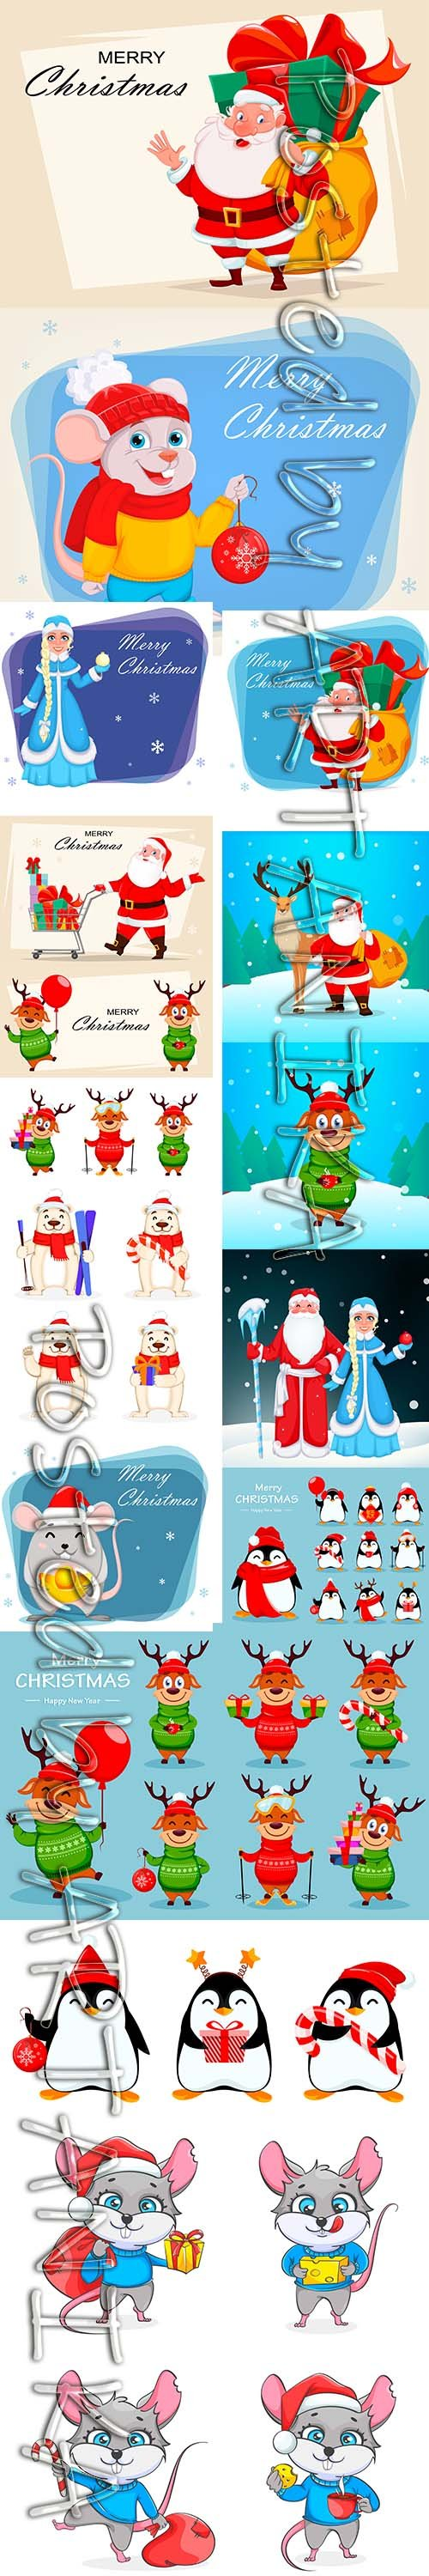 Funny Cartoon Mouse and Santa Claus Christmas Illustration Pack